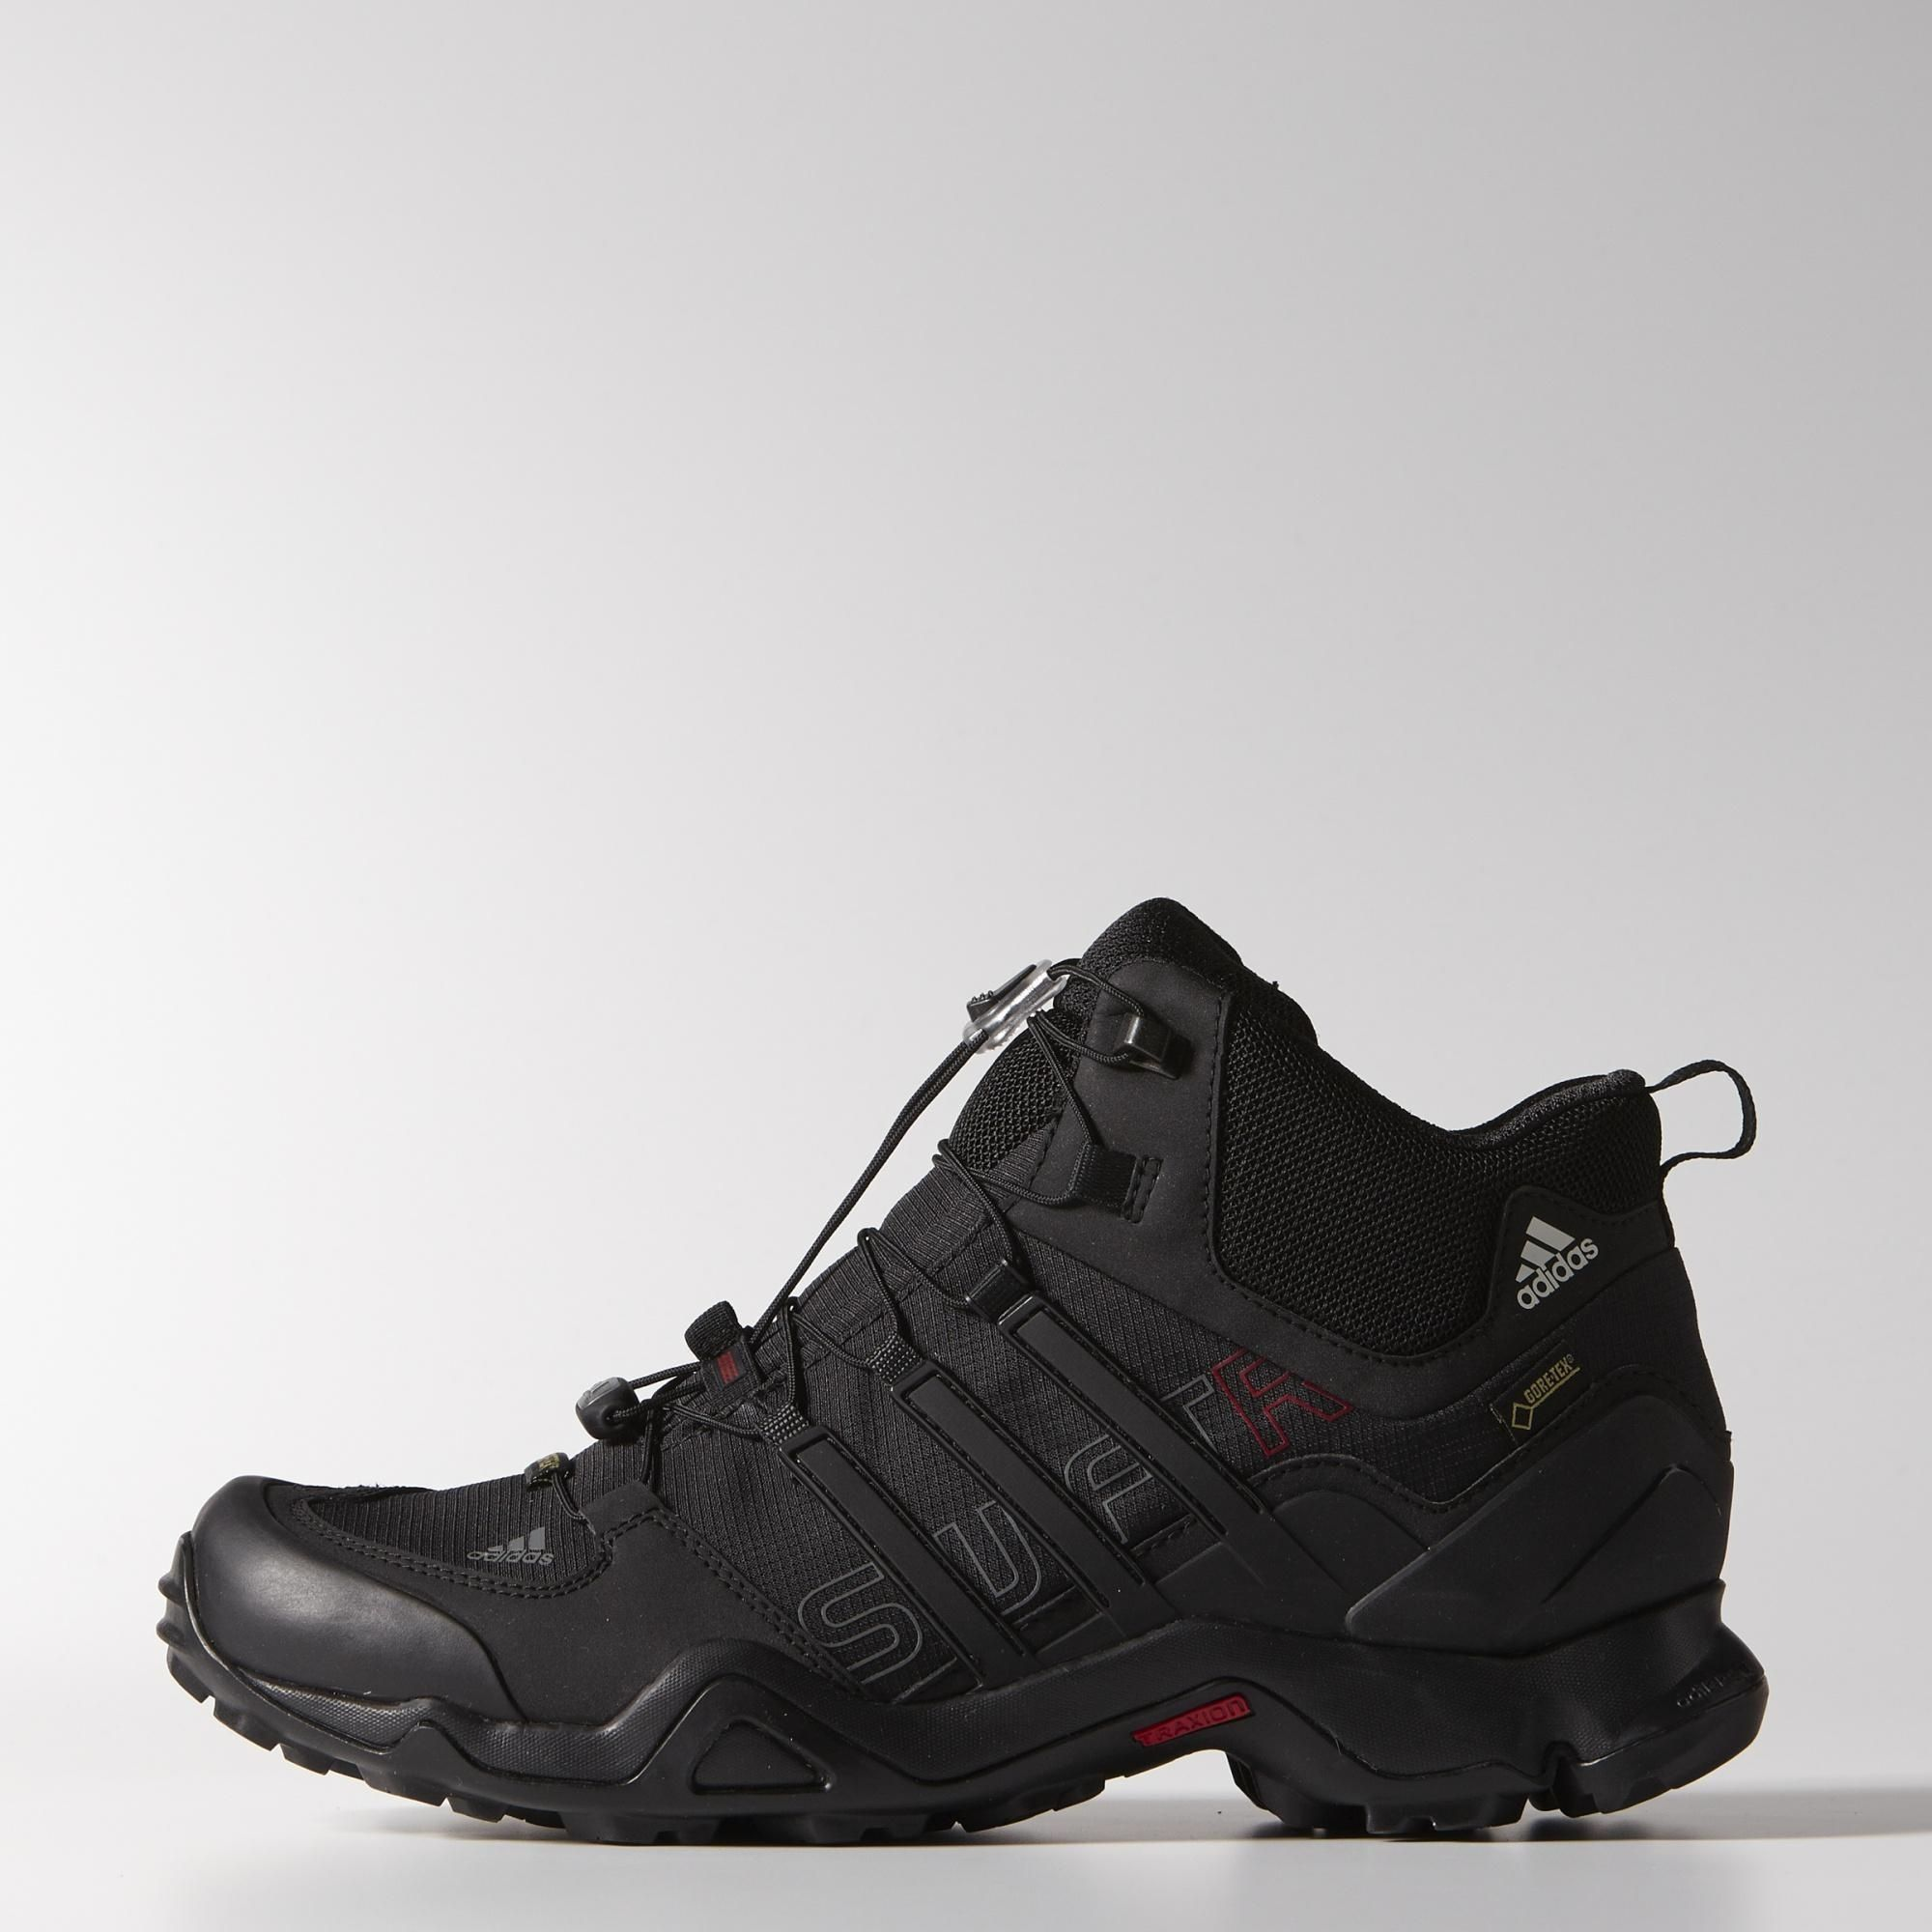 Gtx De Xy45bqwq R Chile Terrex Zapatillas Swift Outdoor Adidas Mid q7xZavq